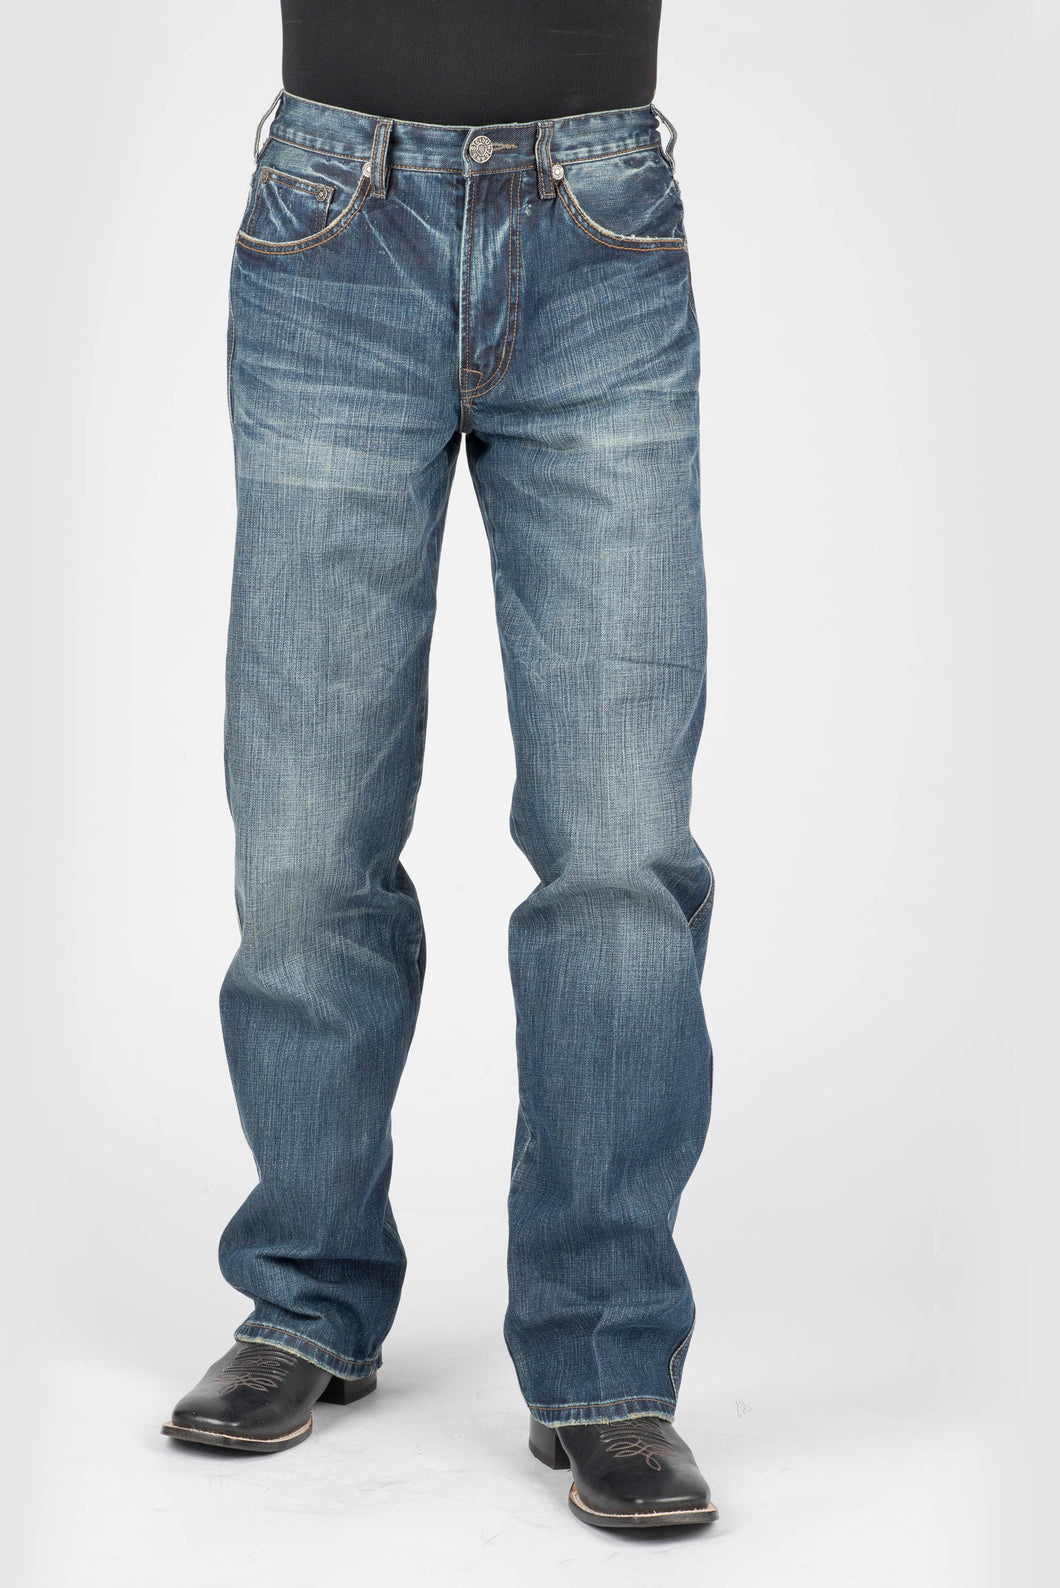 Stetson Men's Collection-instock Stetson Mens Jeans Tan Emb